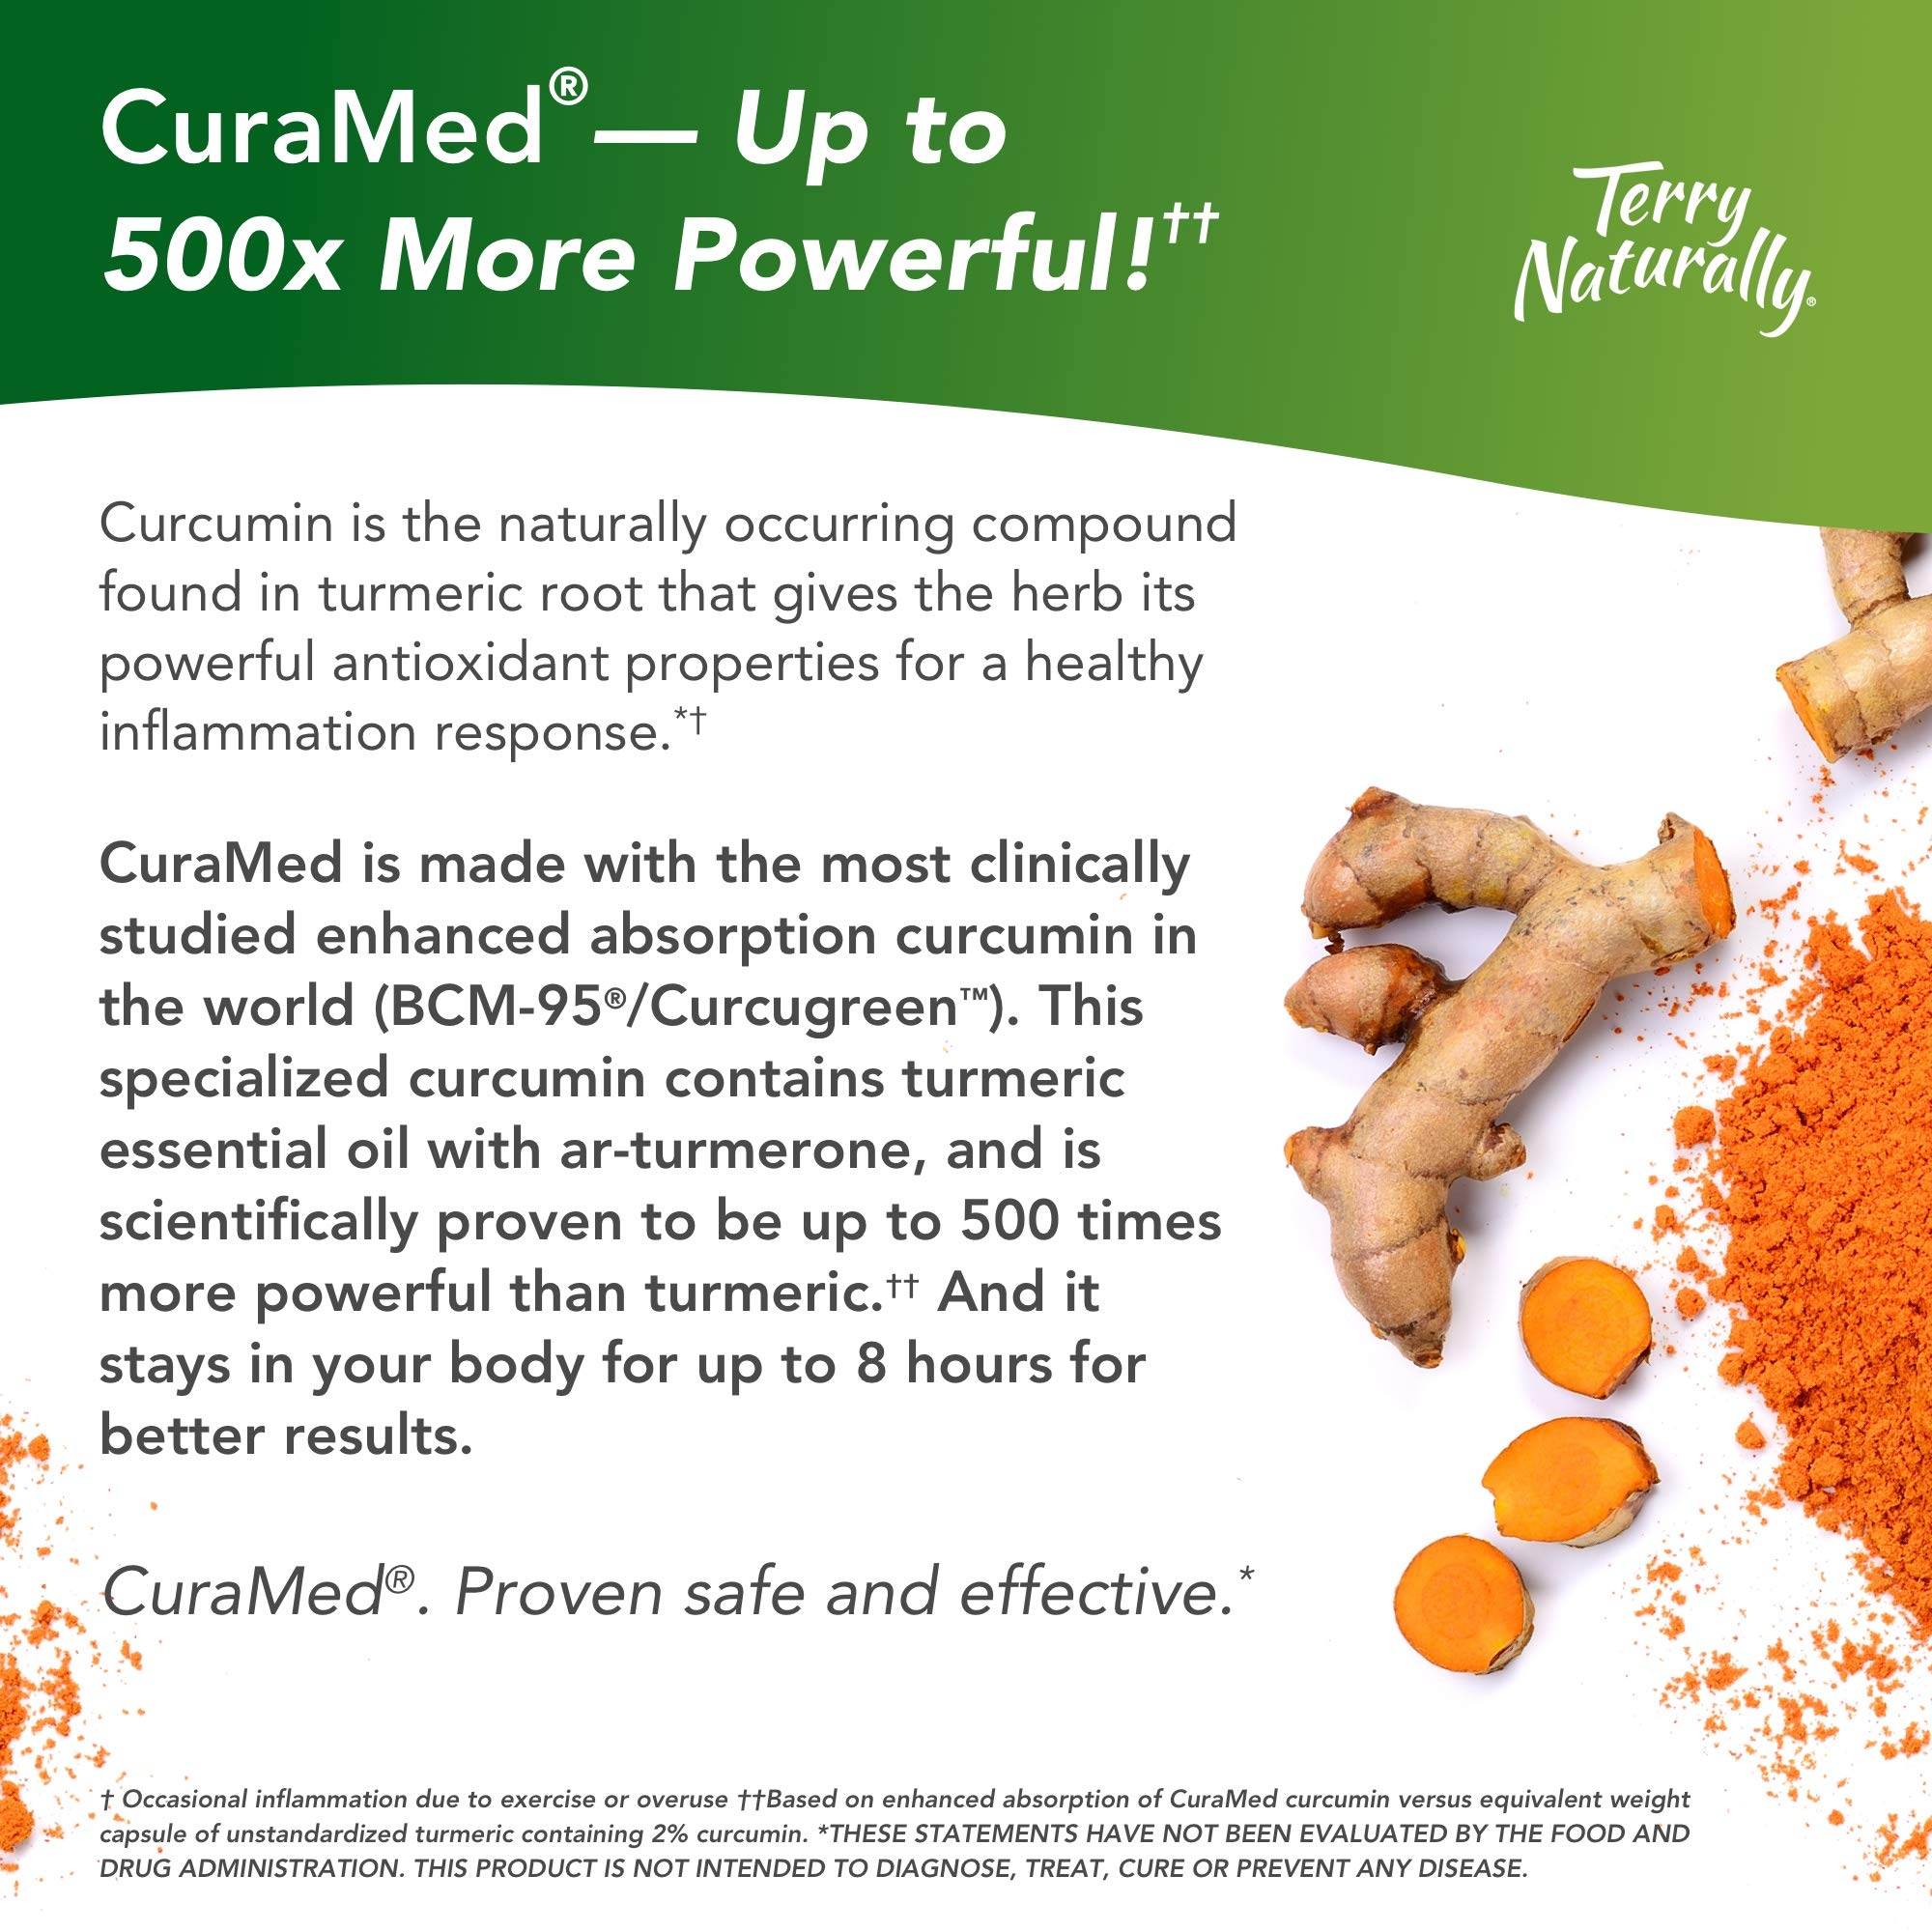 Terry Naturally CuraMed 750 mg - 60 Softgels - Superior Absorption BCM-95 Curcumin Supplement, Promotes Healthy Inflammation Response - Non-GMO, Gluten-Free, Halal - 60 Servings by Terry Naturally (Image #4)